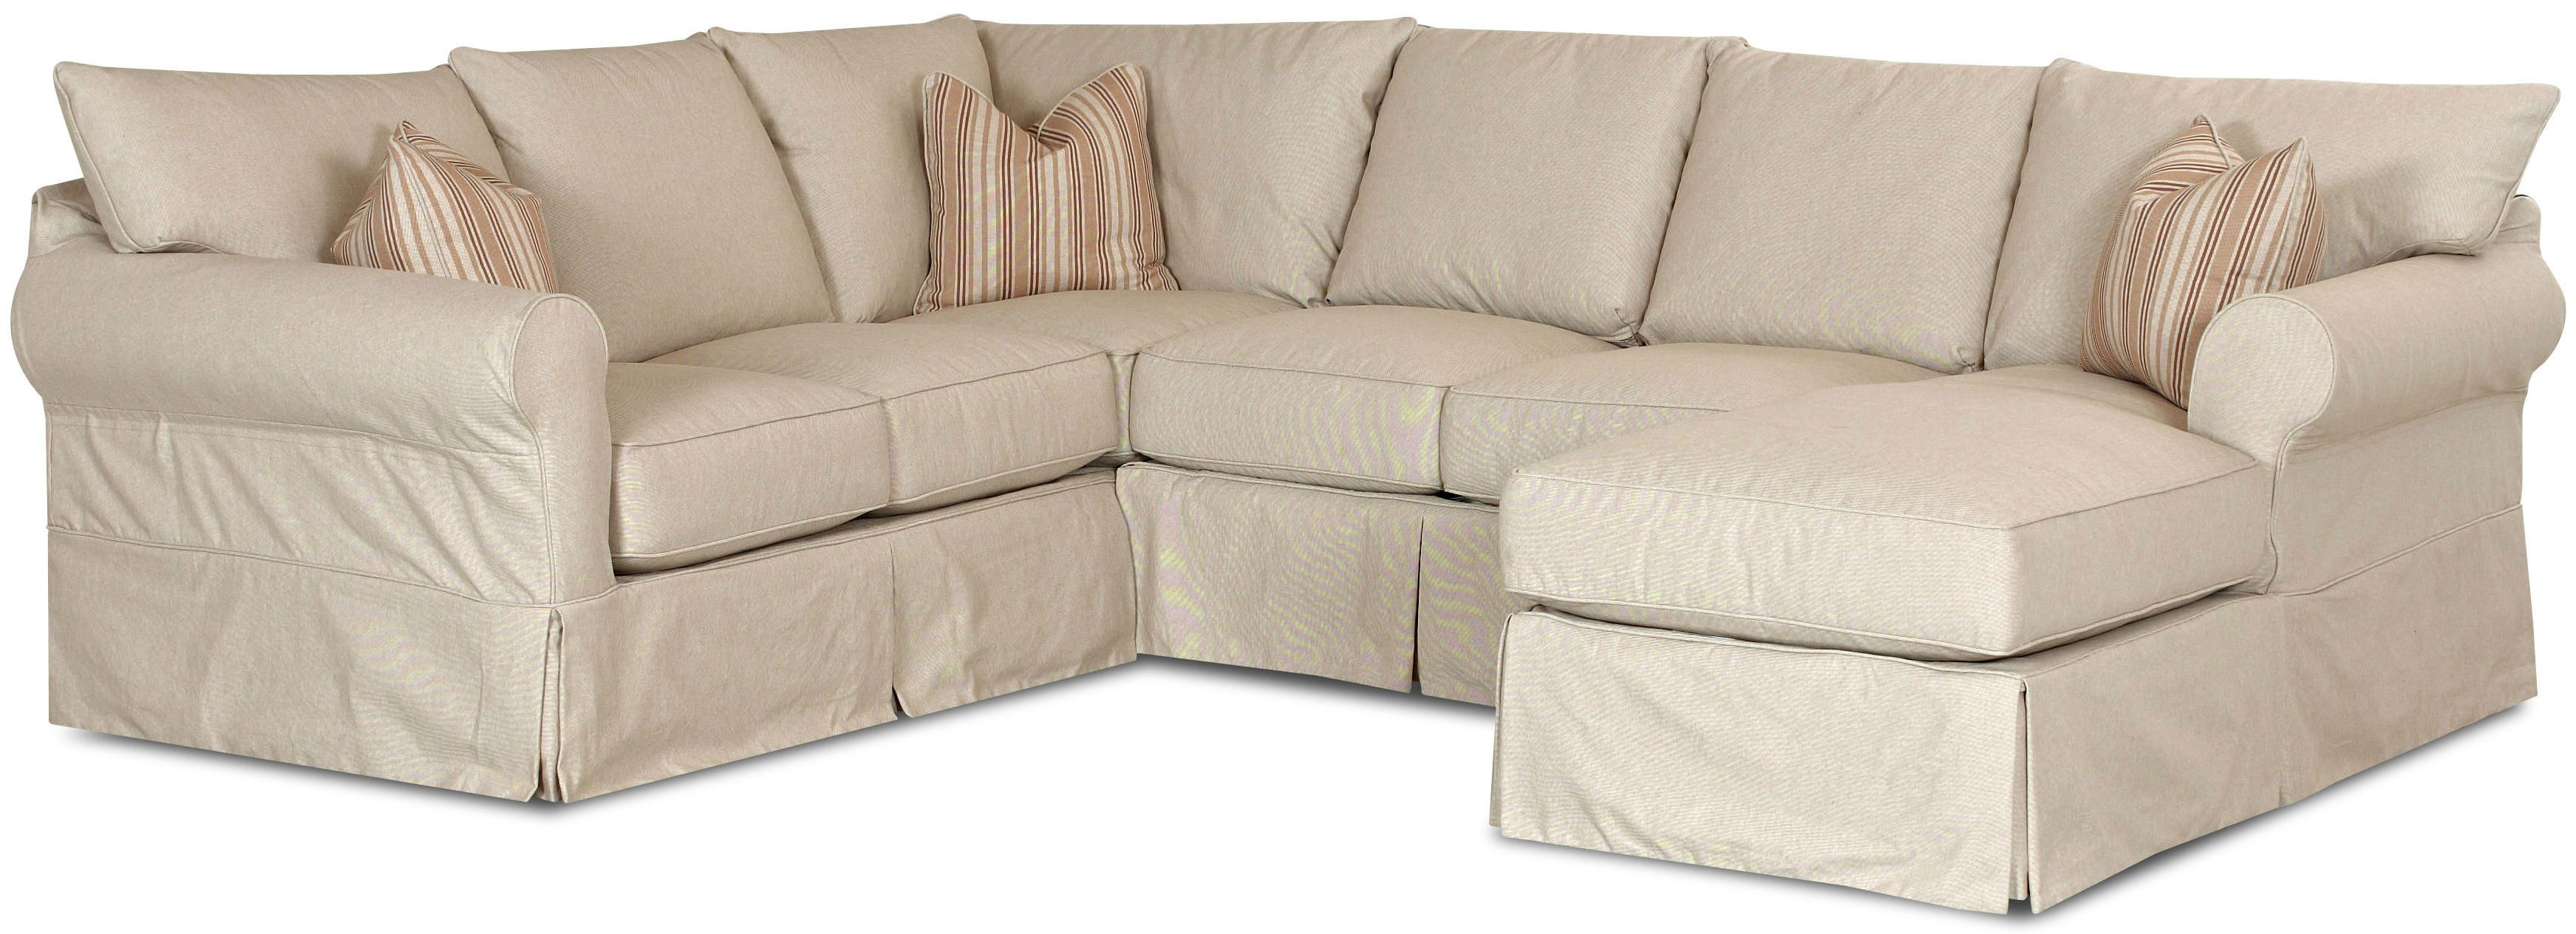 Slip cover sectional sofa with right chaise by klaussner wolf and gardiner wolf furniture Slipper loveseat